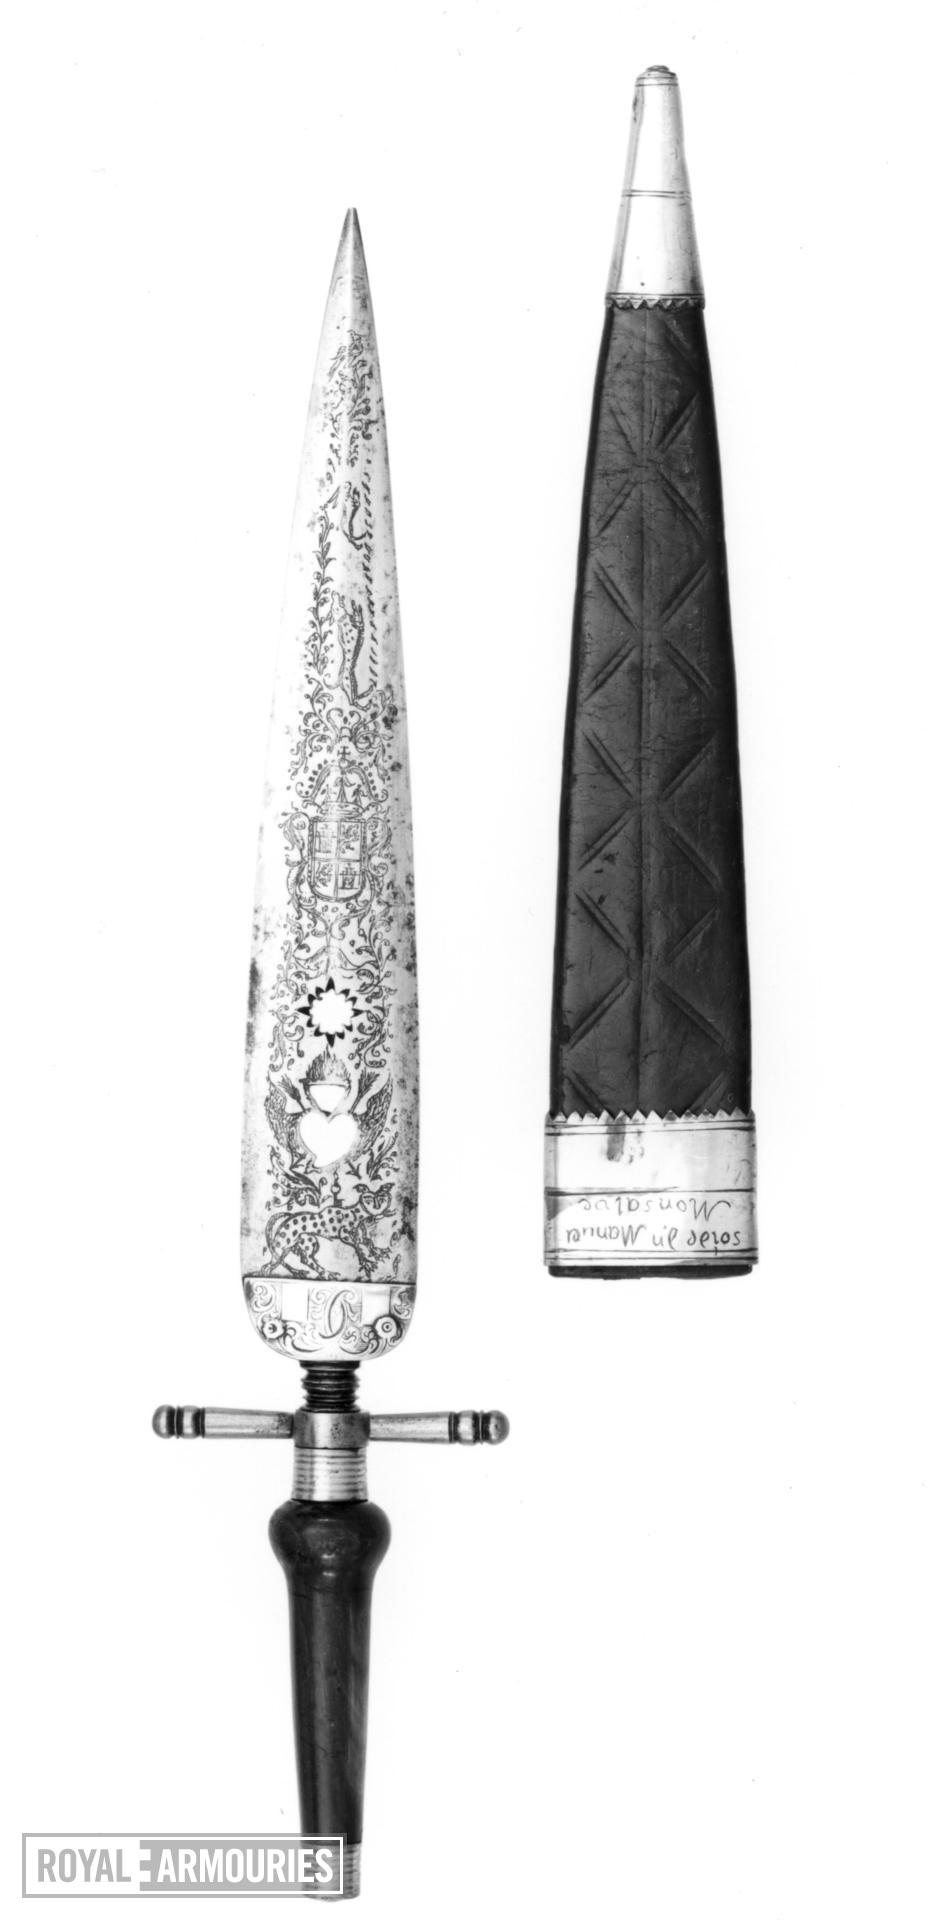 Bayonet and scabbard - Plug bayonet with engraved blade